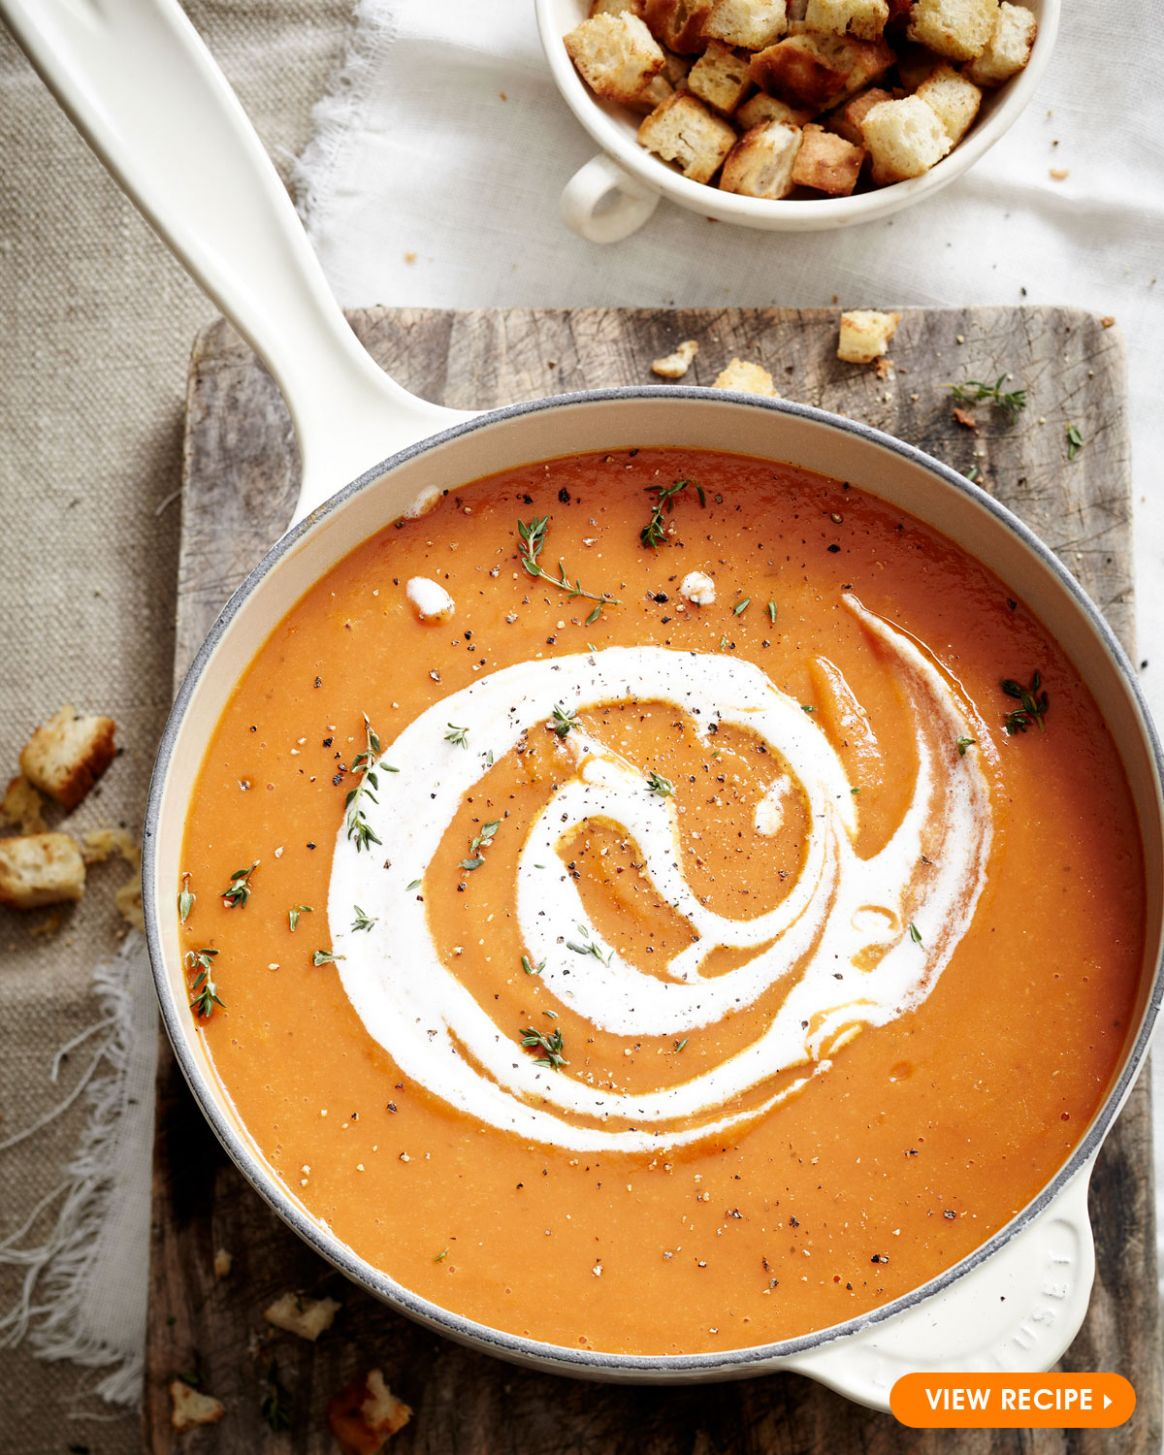 Vegetable Soup with Croutons - Le Creuset Recipes - Soup Recipes South Africa